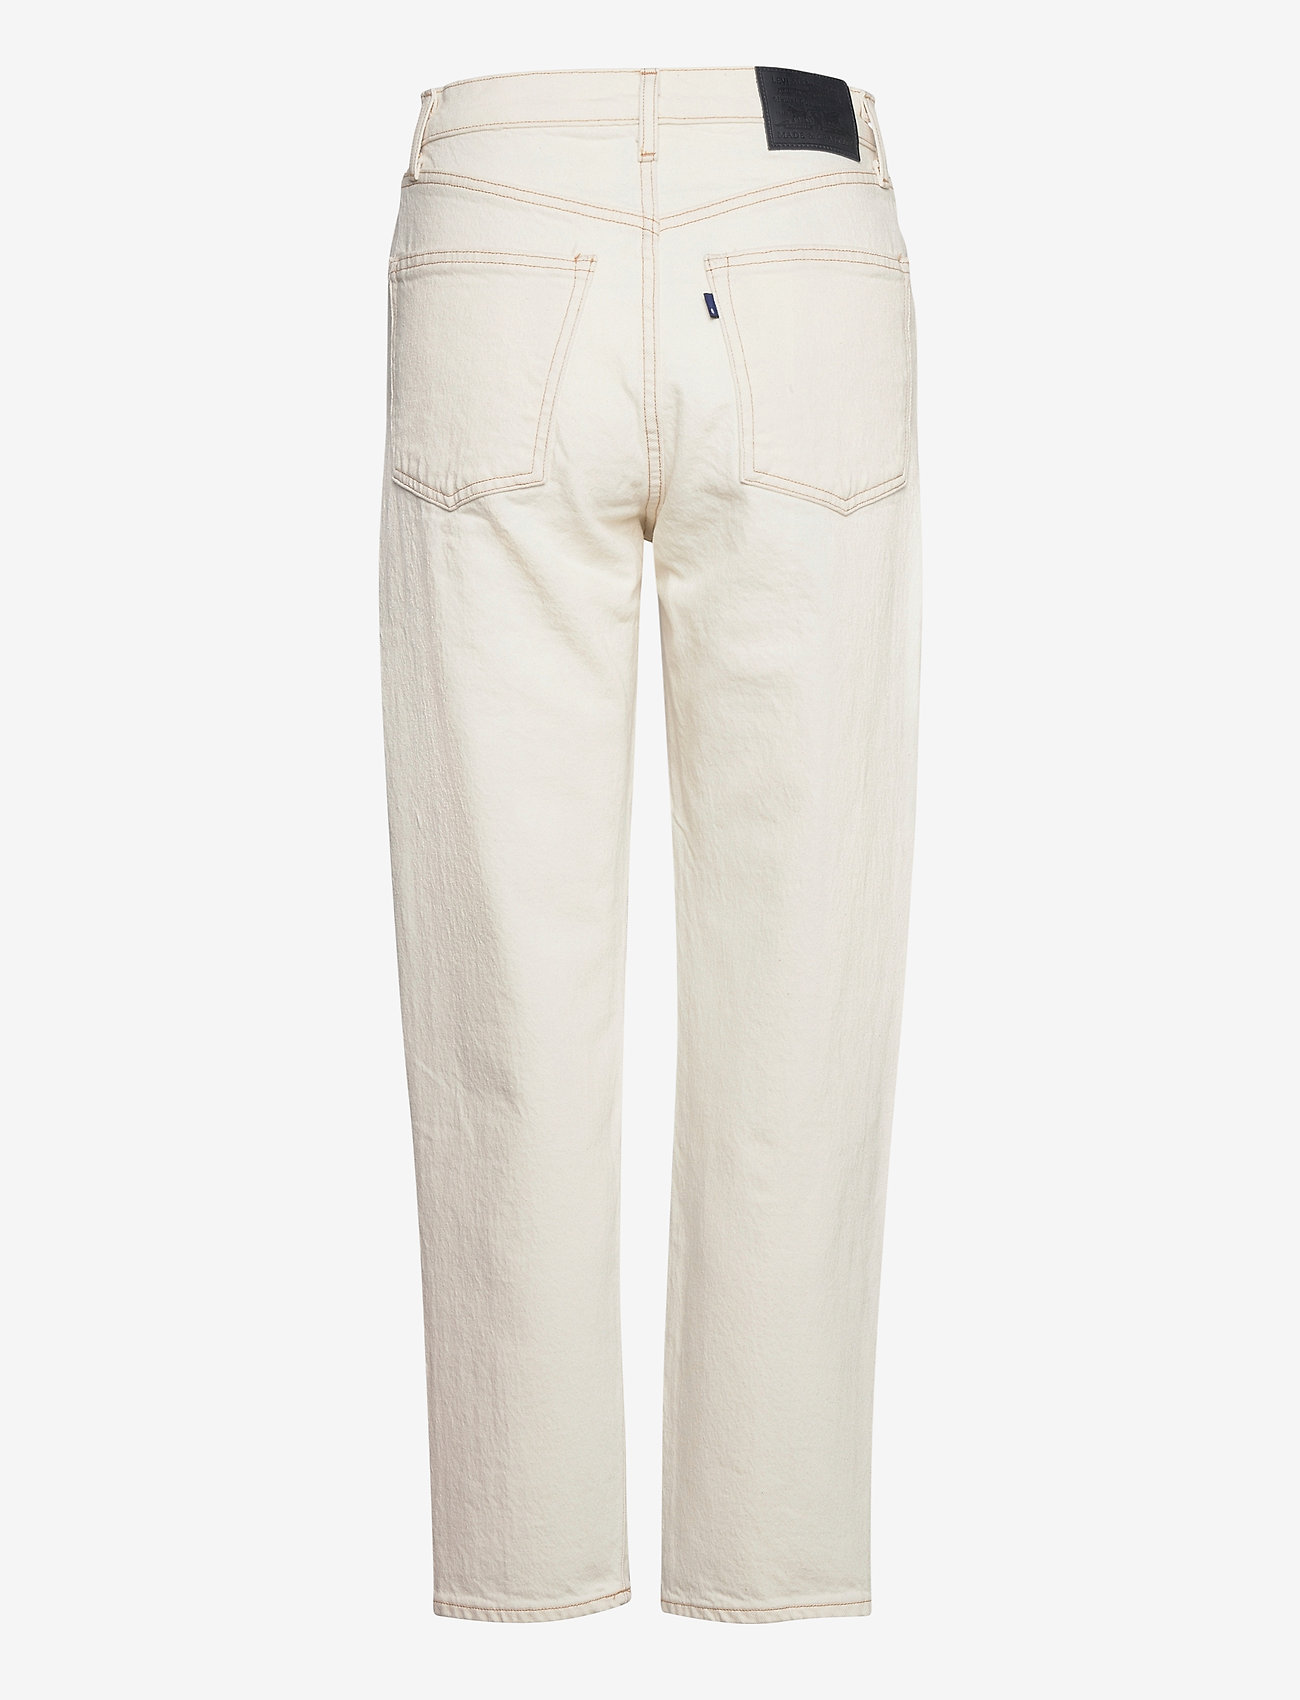 Levi's Made & Crafted - LMC THE COLUMN LMC TRACKS - straight jeans - neutrals - 1